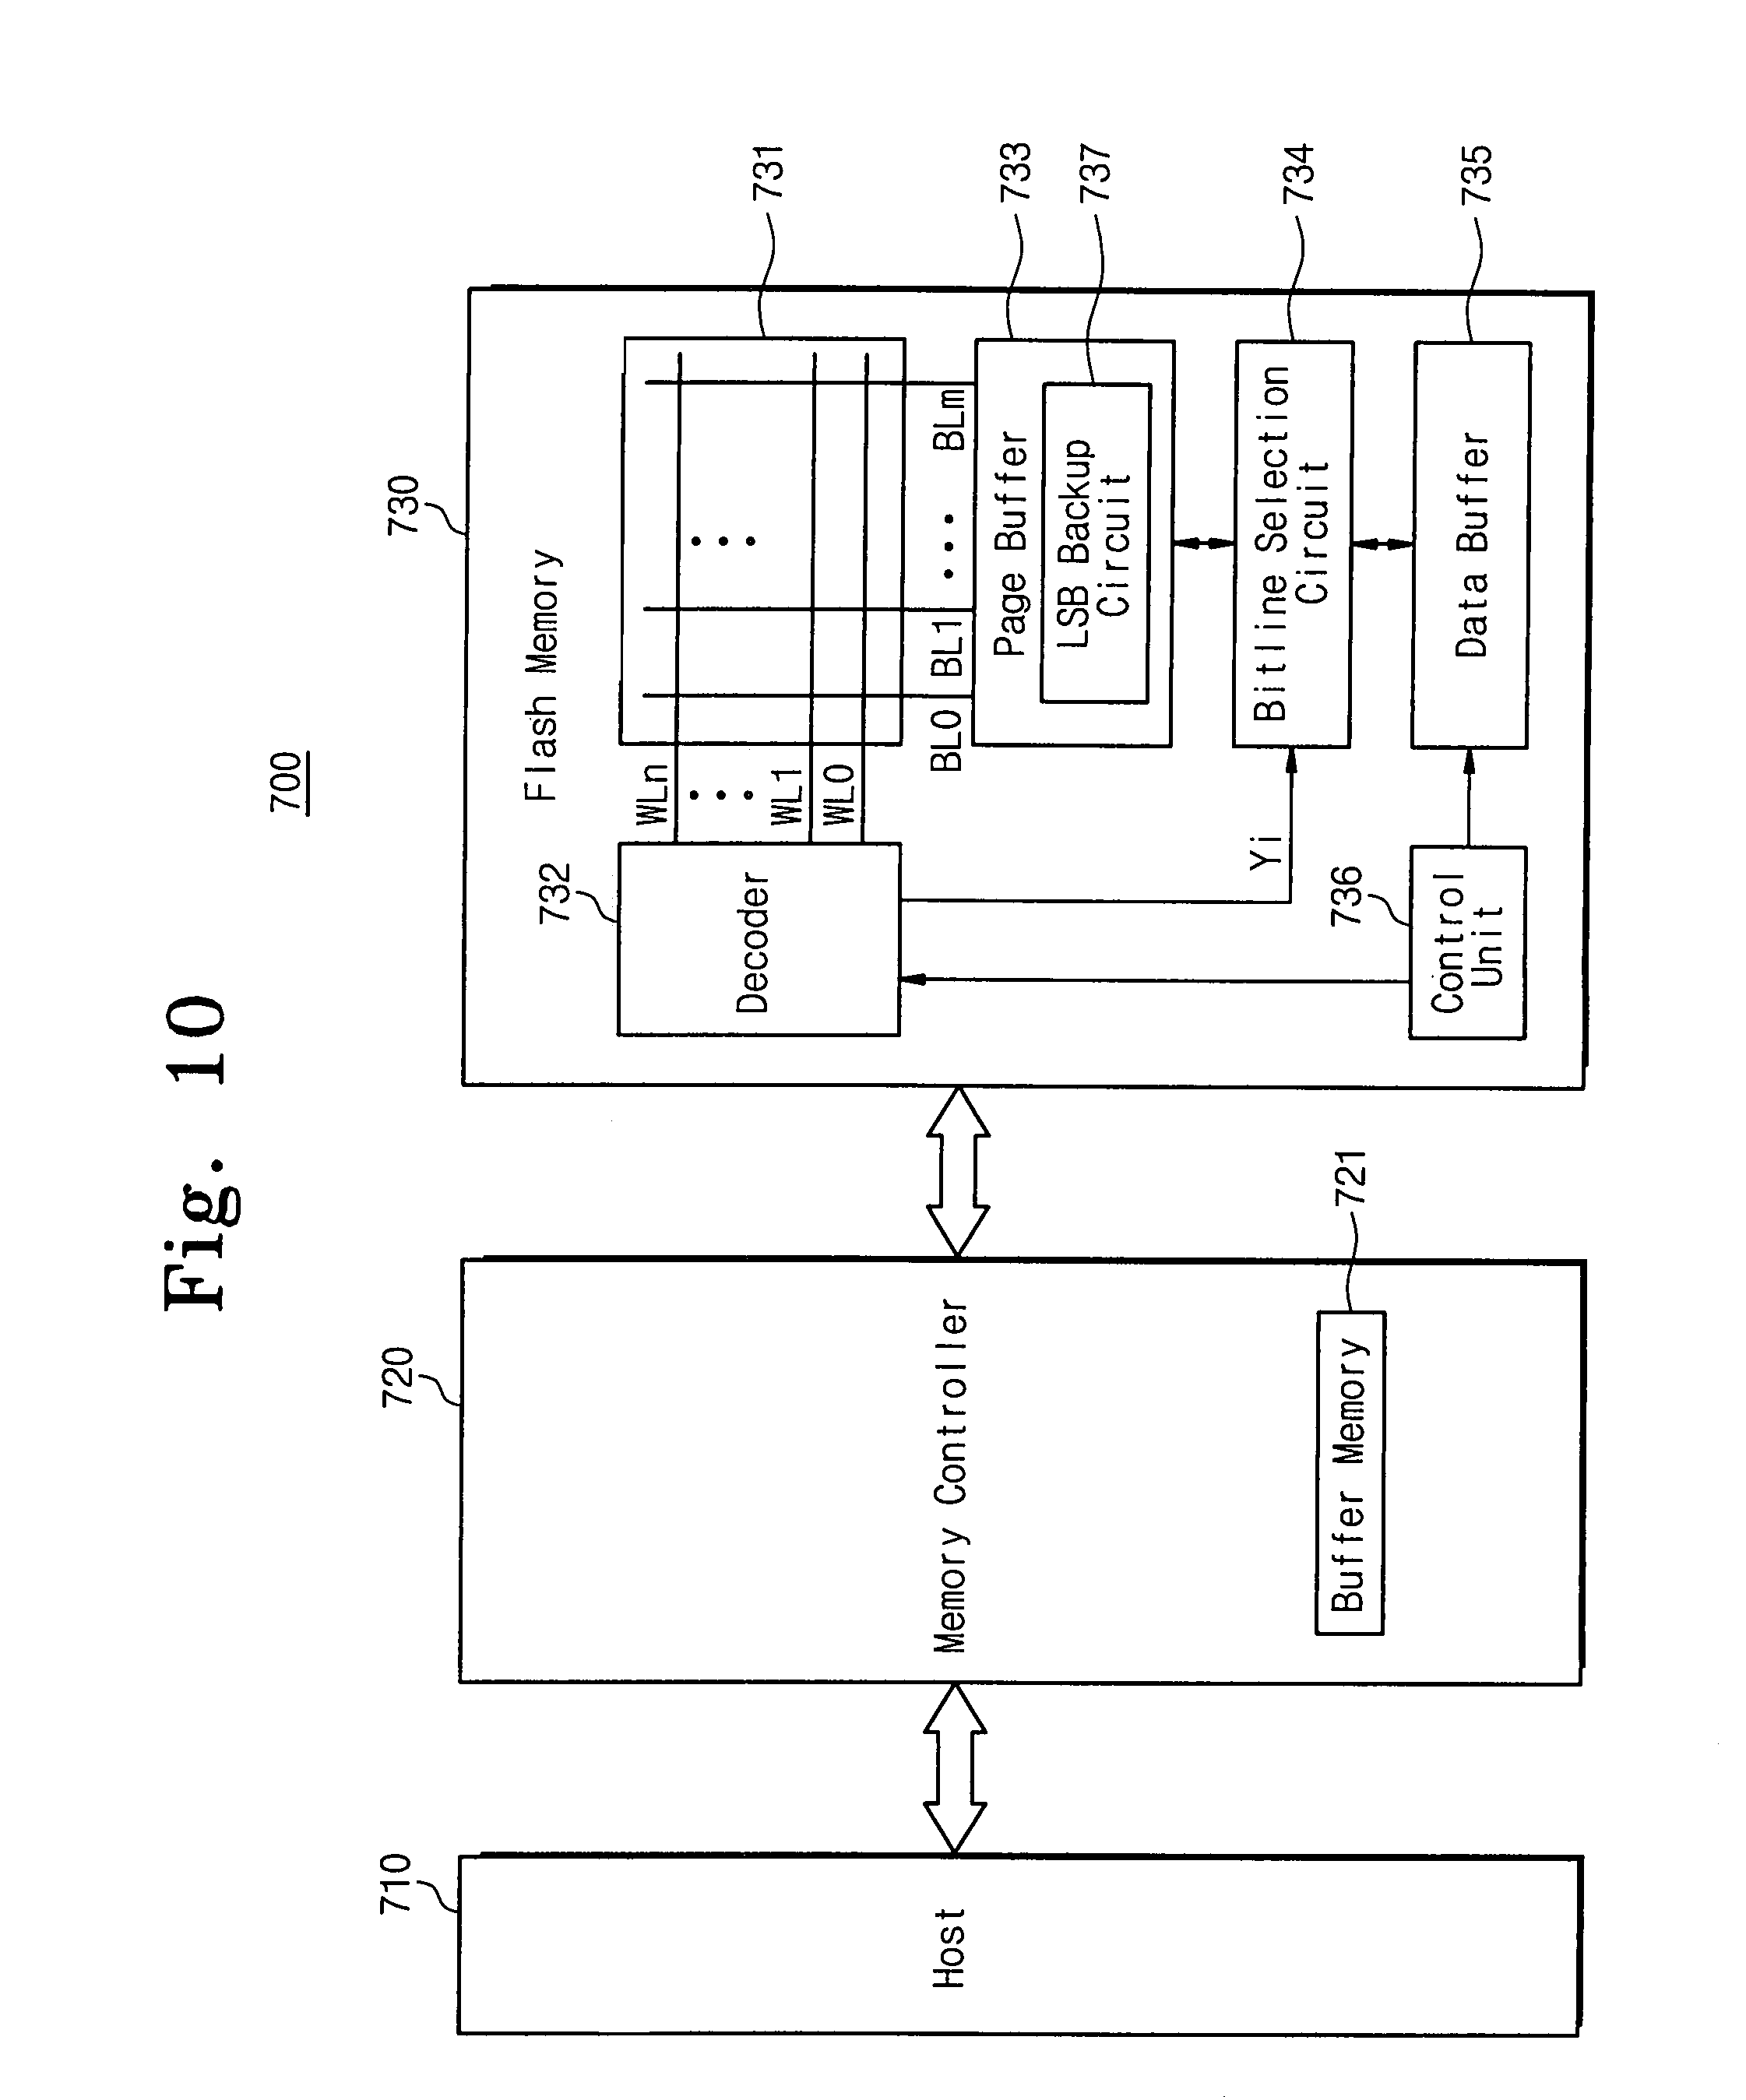 patent us7594157 - memory system with backup circuit and programming method